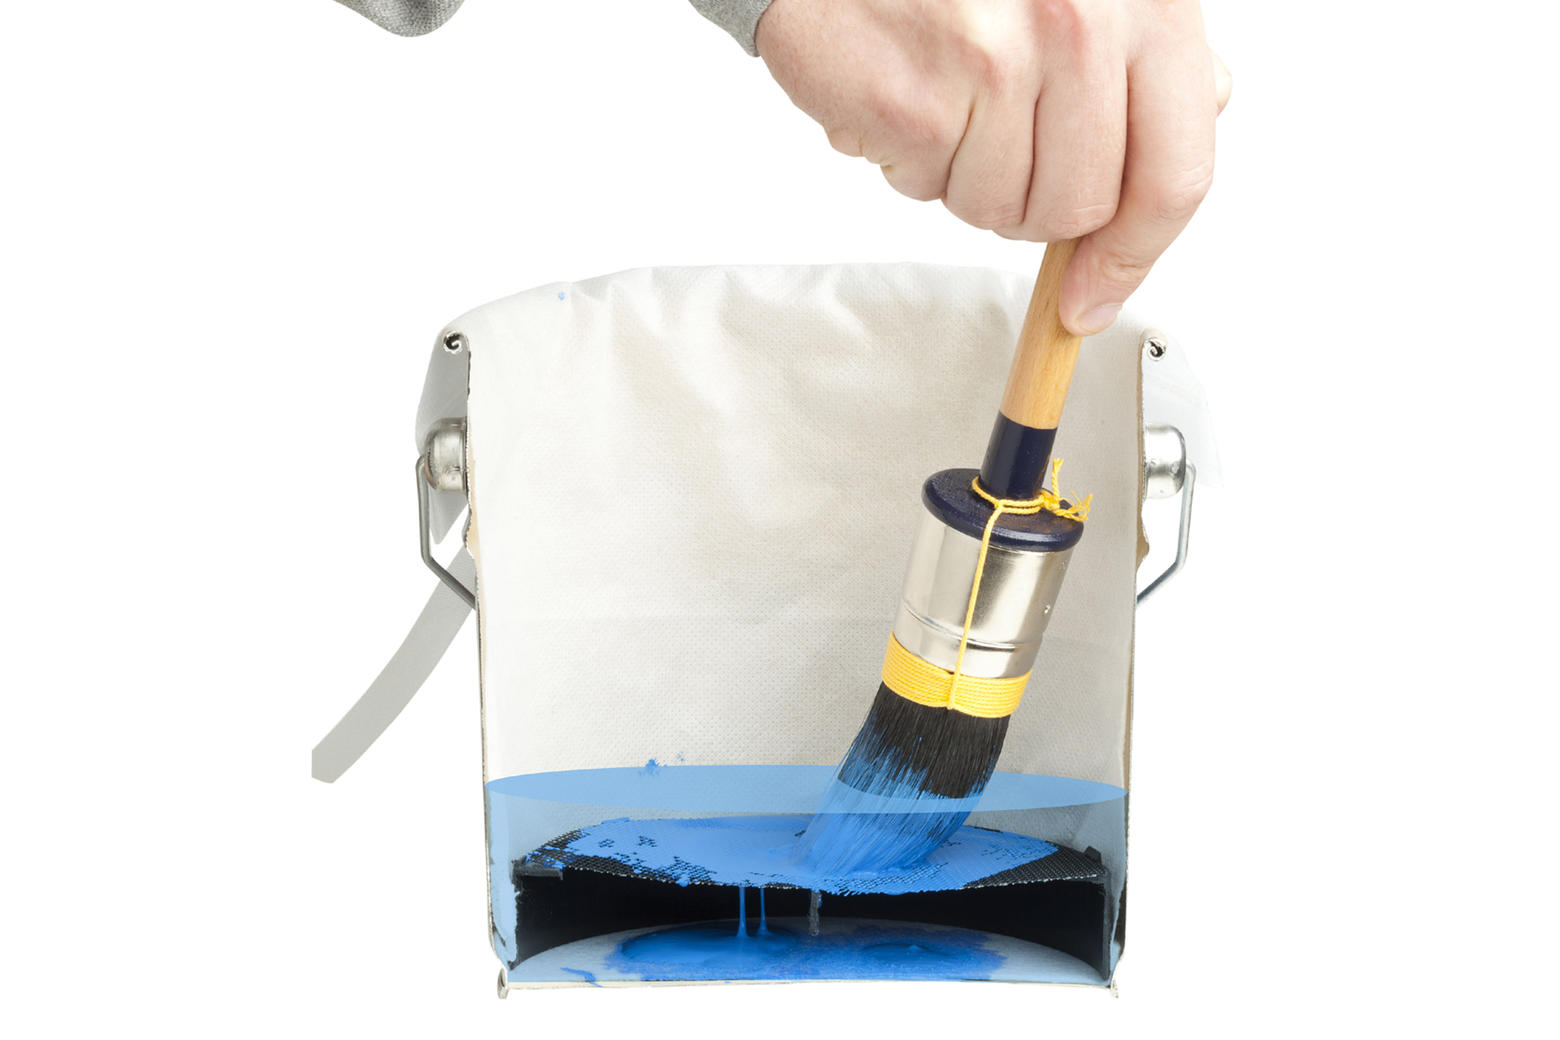 The paint particles are collected in the bag under the sieve.